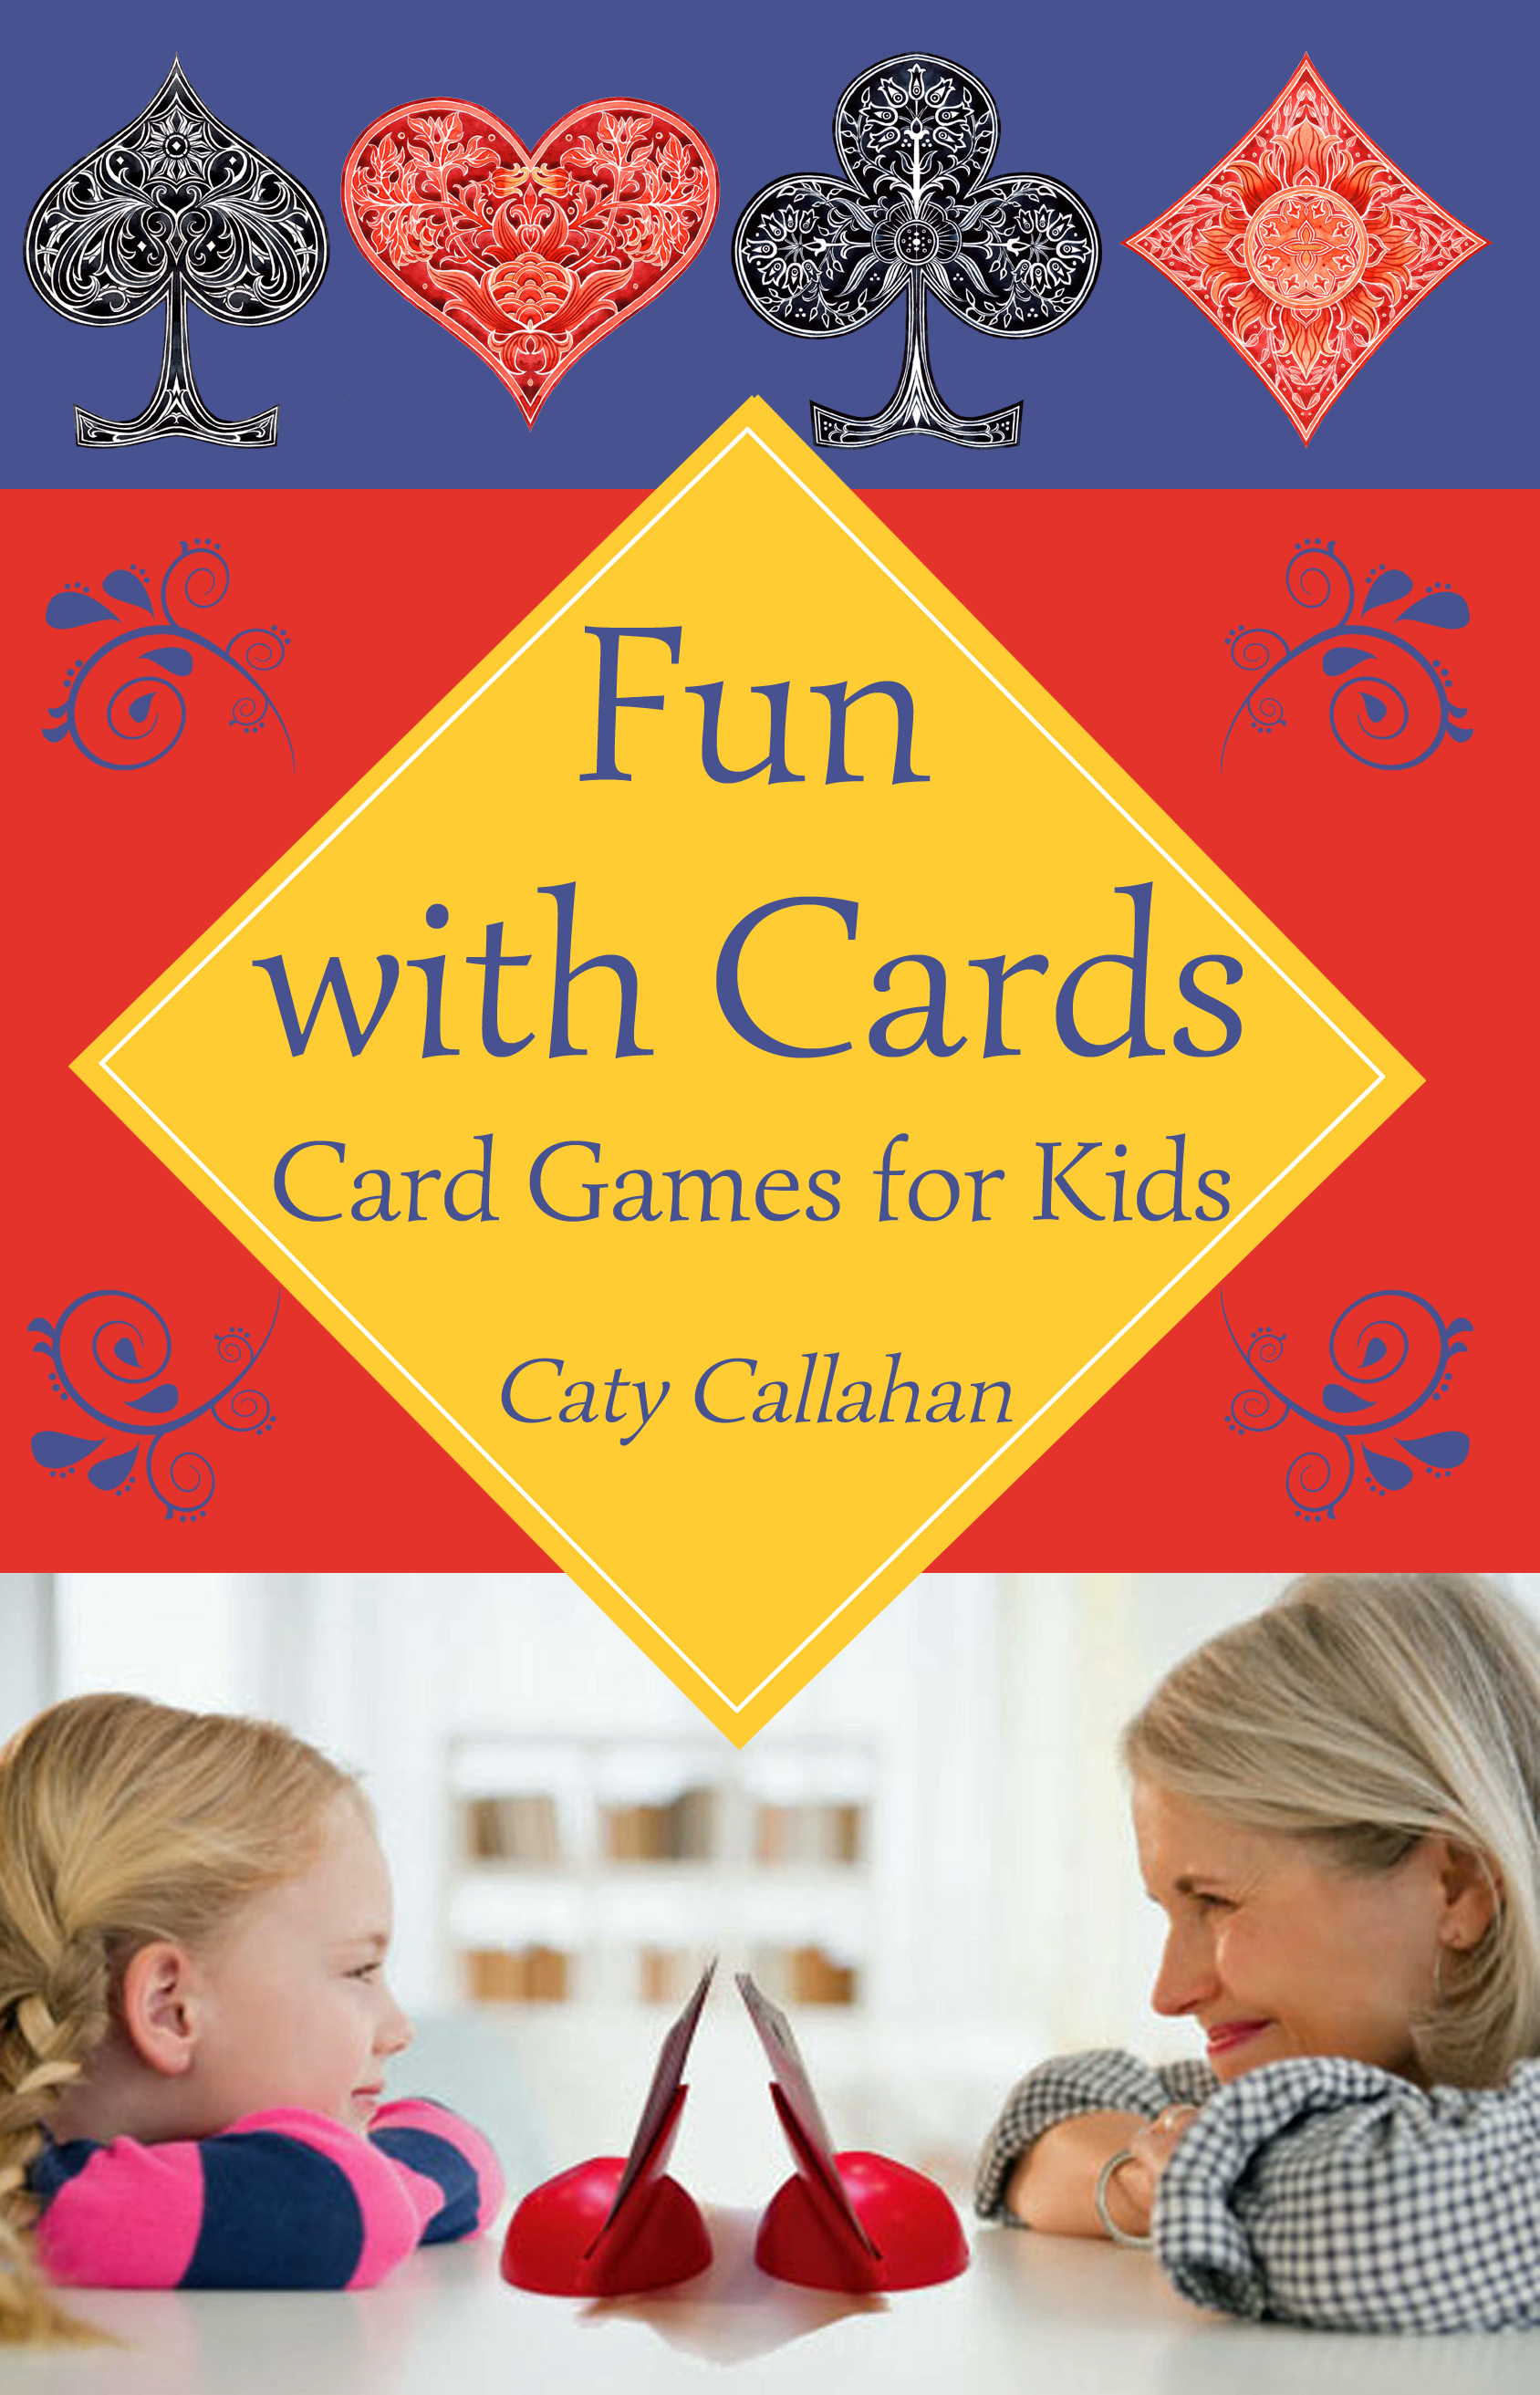 Fun with Cards | Card Games for Kids